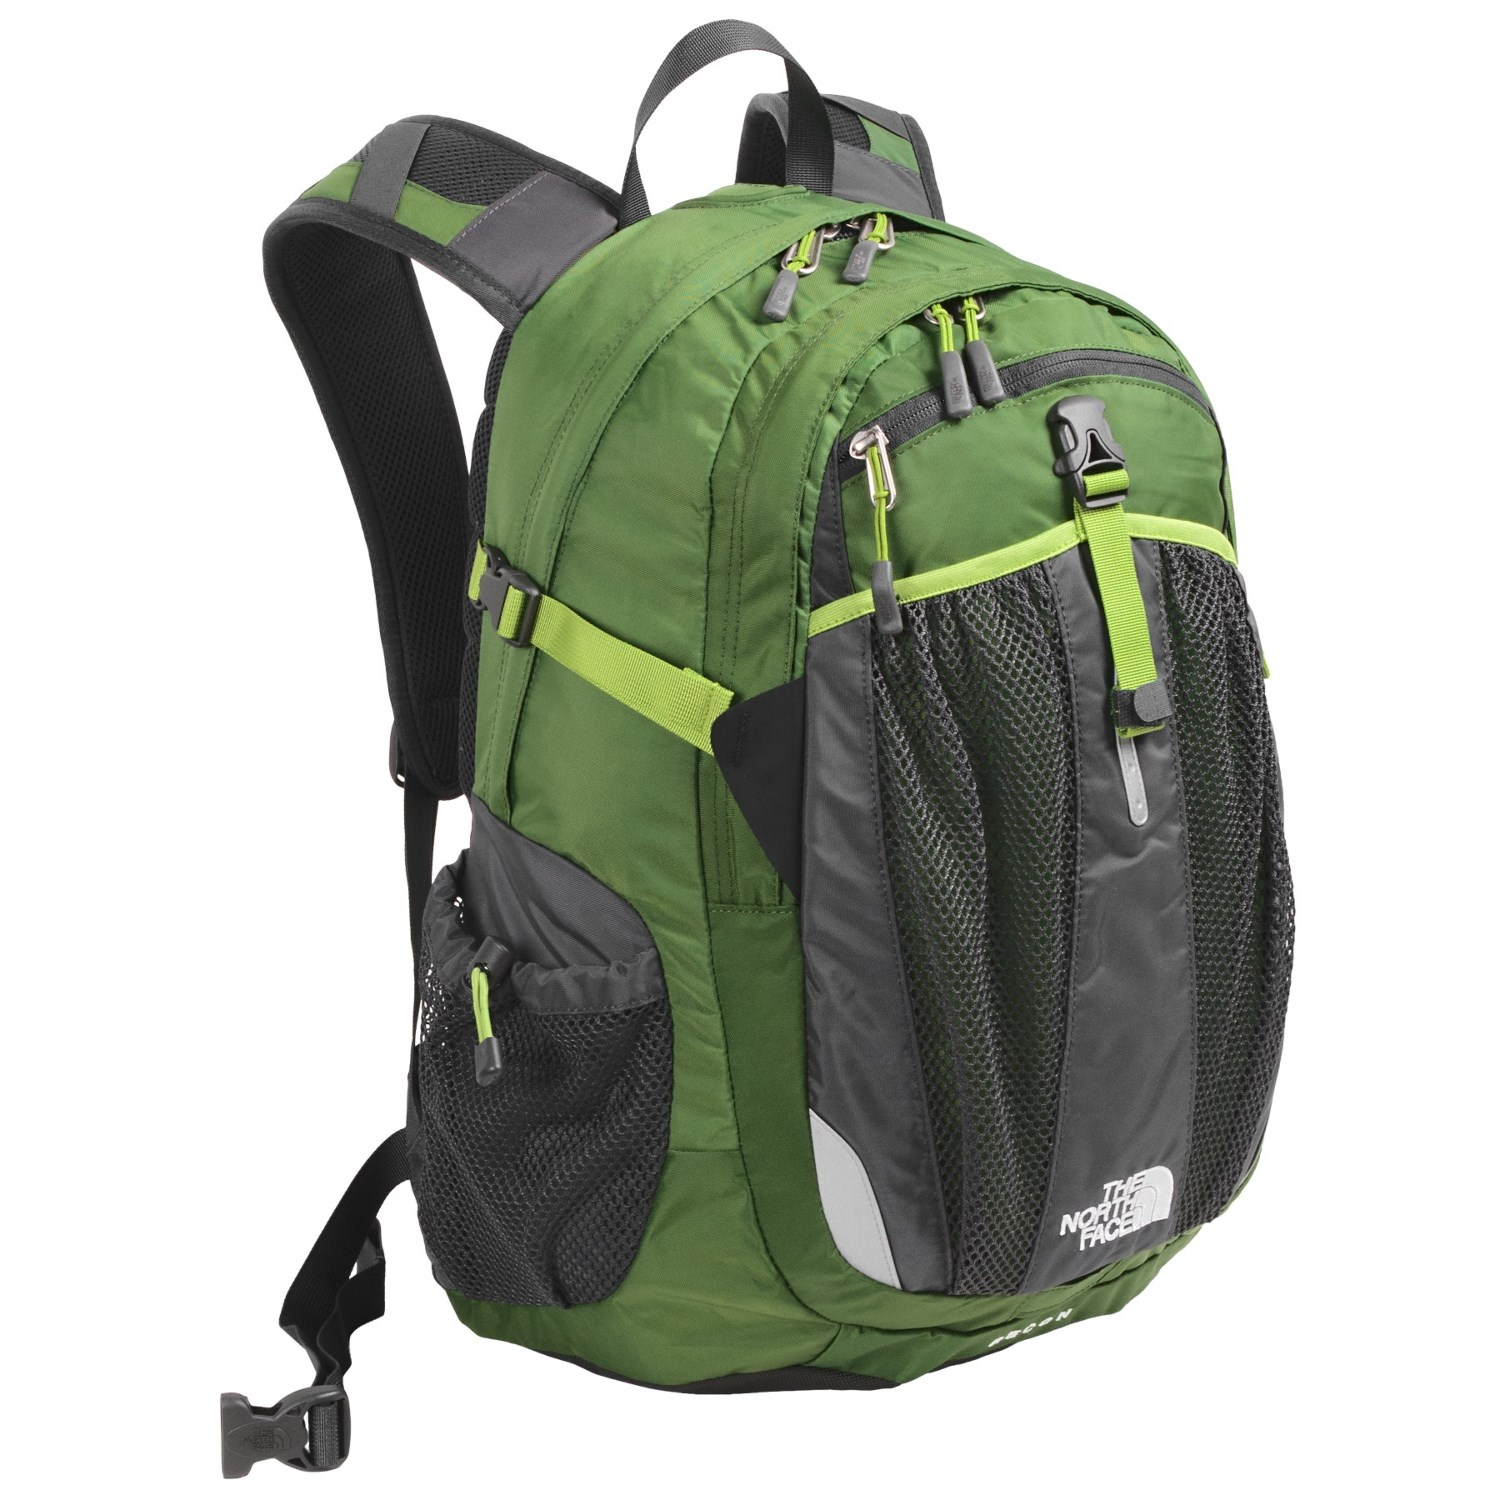 The-north-face-recon-backpack-in-ivy-green~p~4940j_02~1500